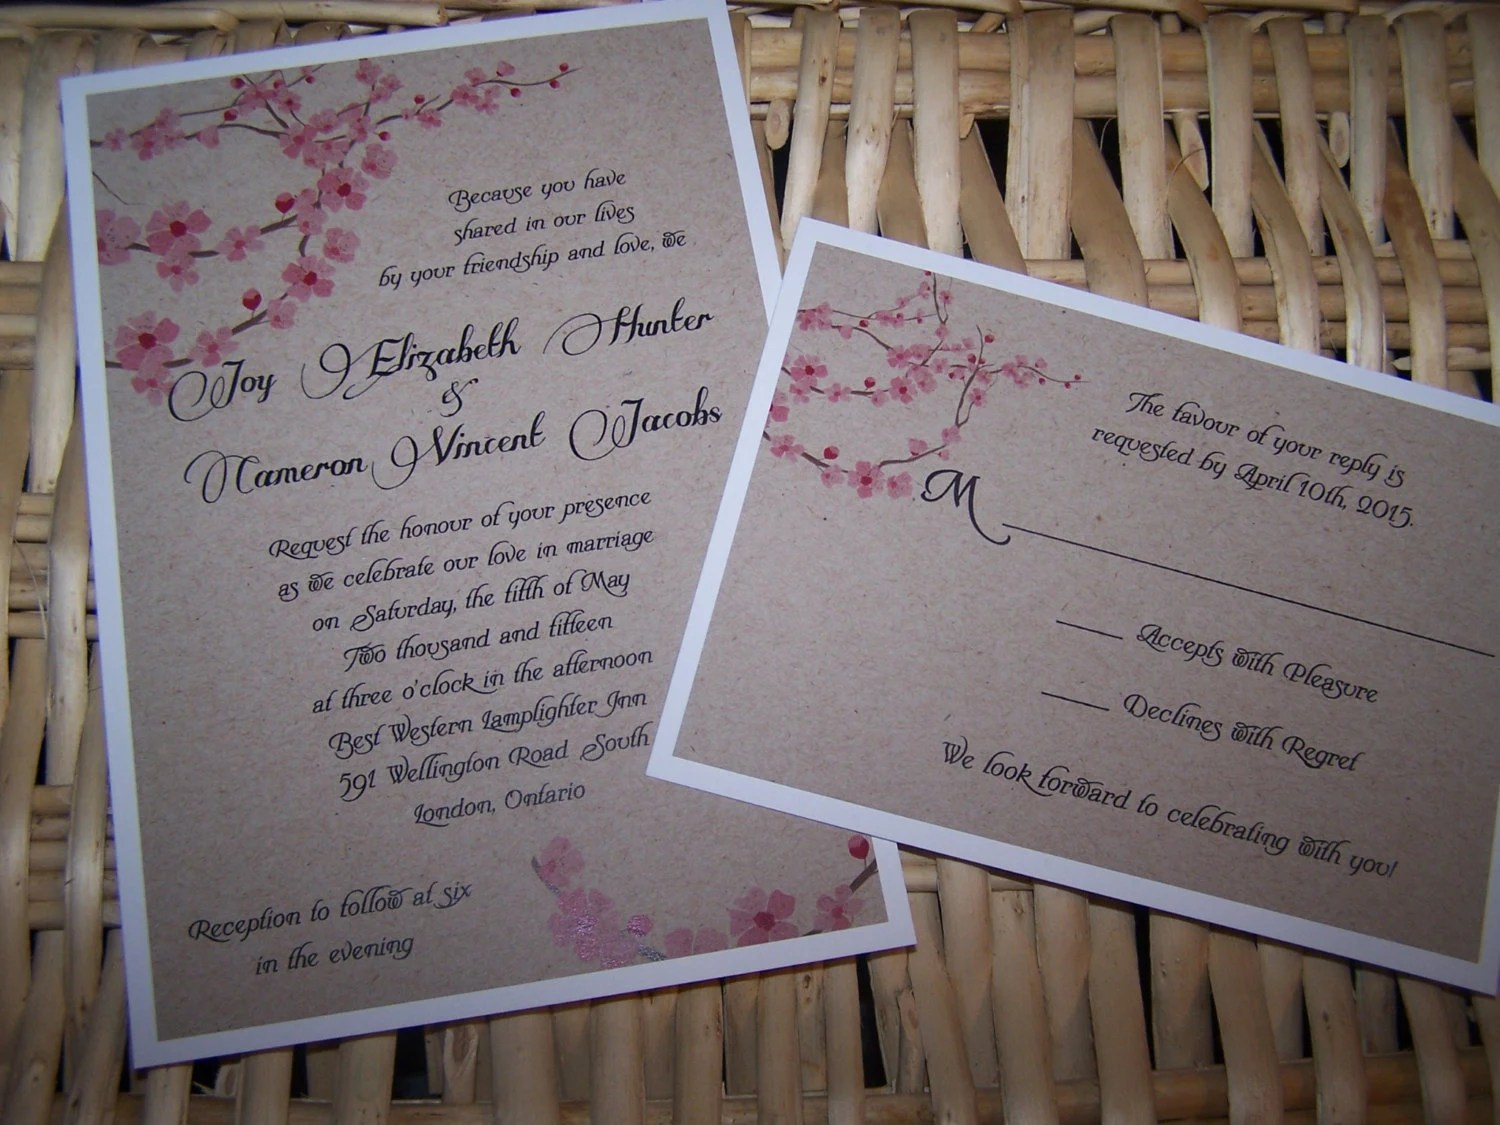 Cardstock Paper For Wedding Invitations: Rustic Wedding Invitation With Cherry Blossom Flowers